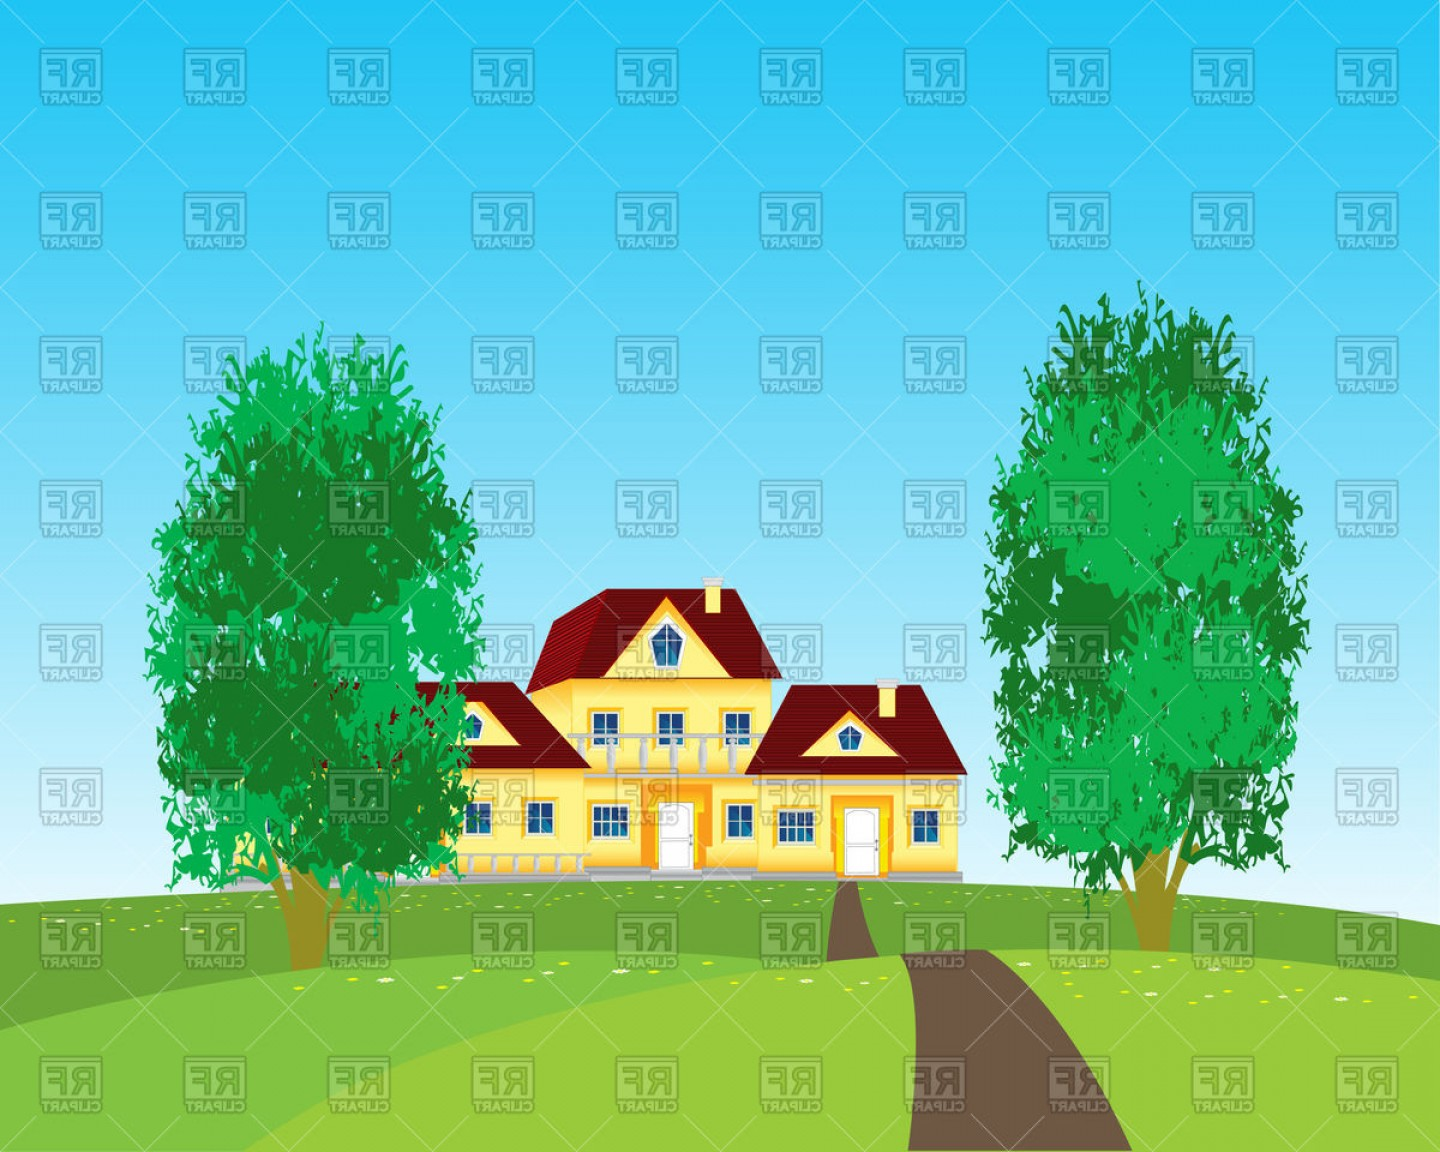 Nature vector clipart clip art black and white stock Village Houses On Nature Vector Clipart | SOIDERGI clip art black and white stock